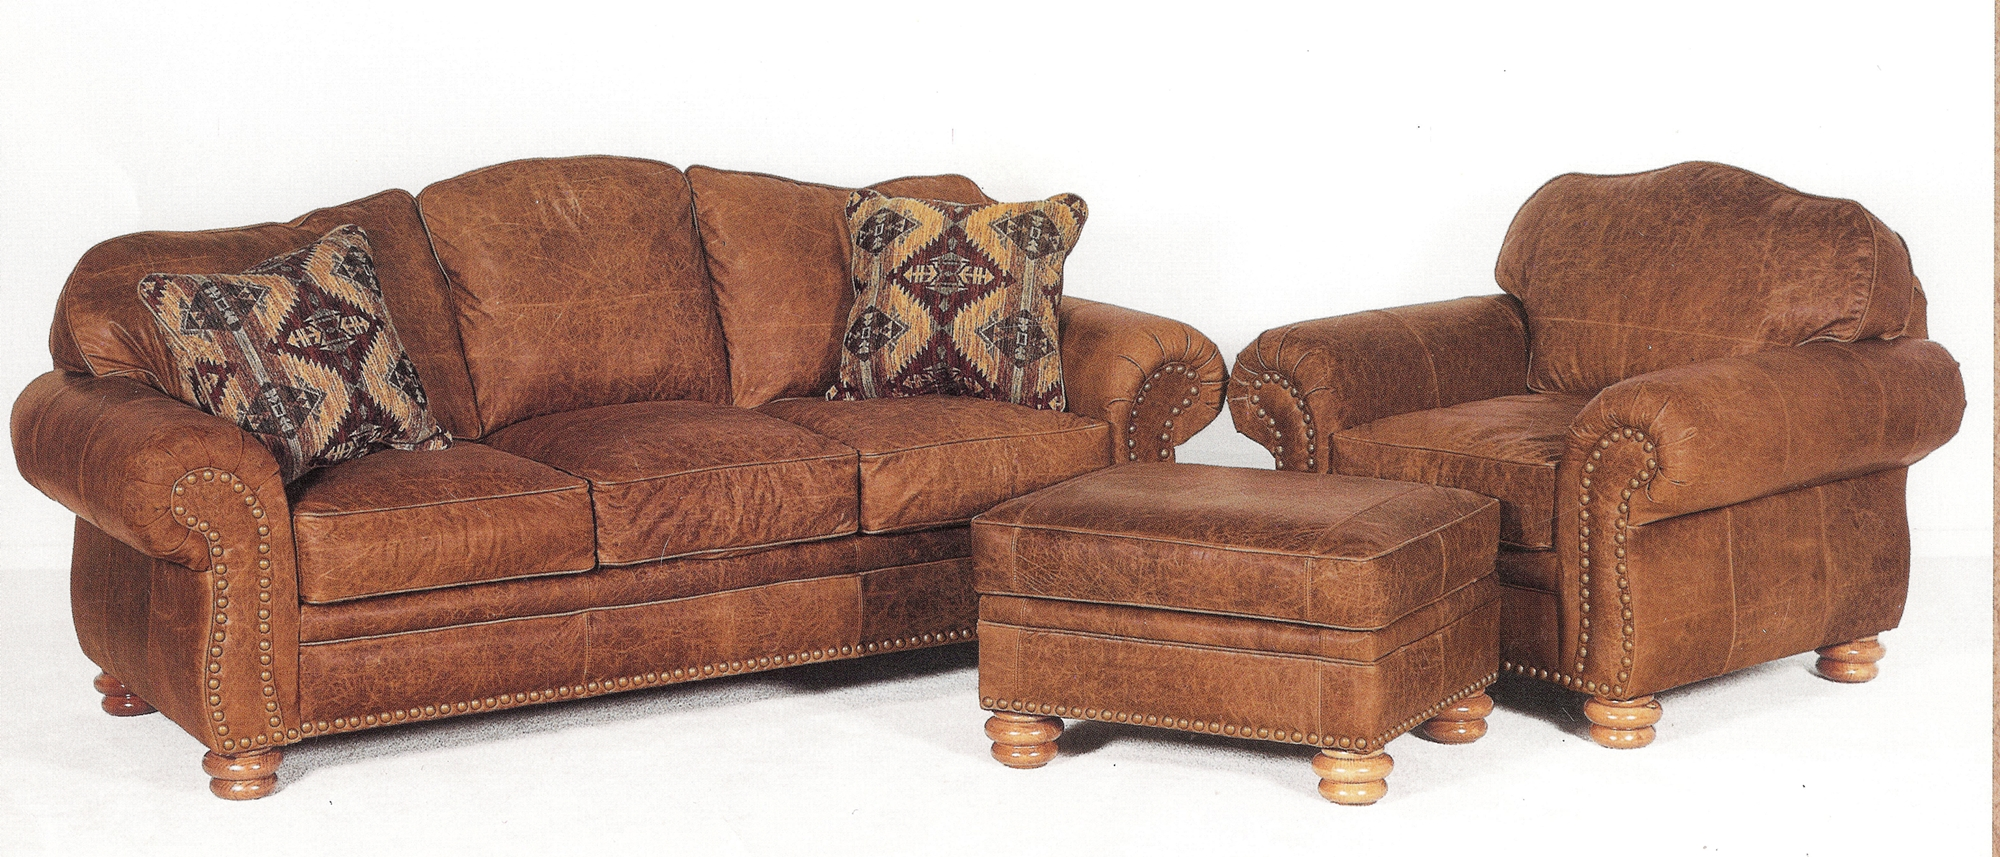 rustic leather sofa chair and ottoman loveseat also available